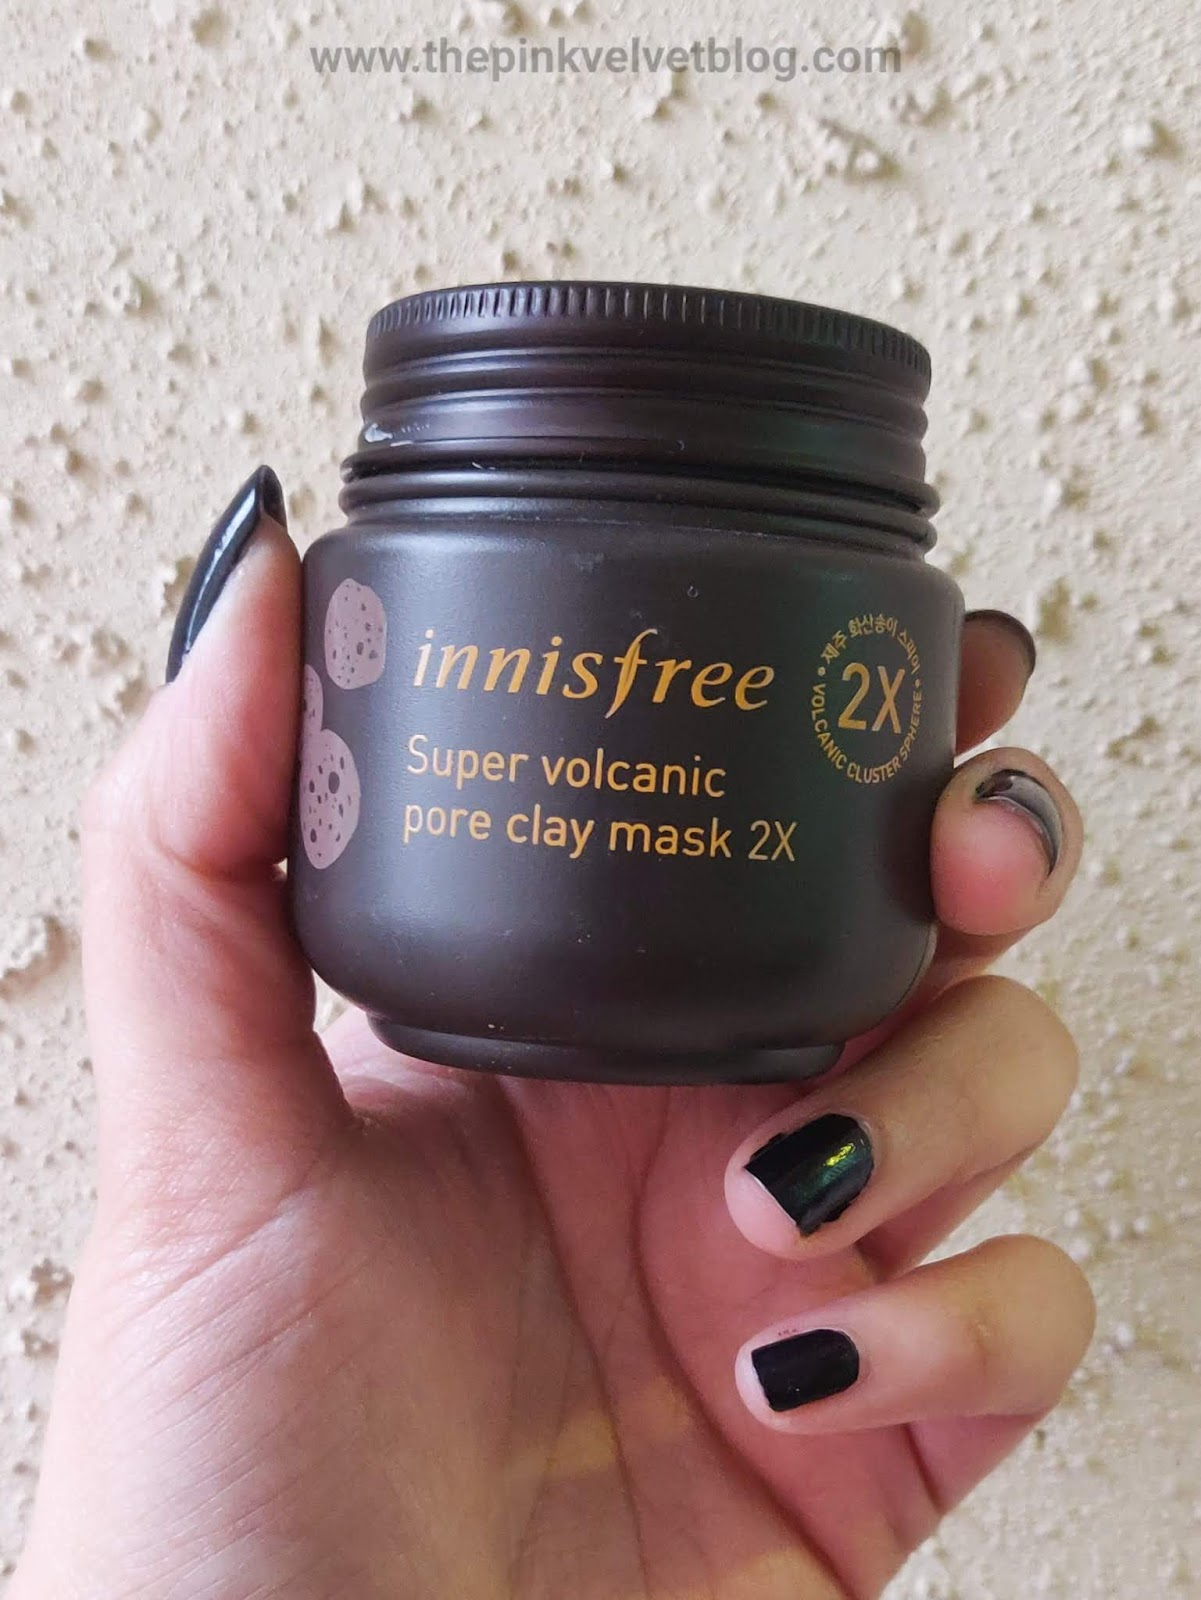 Innisfree Super Volcanic Pore Clay Mask 2X - Review